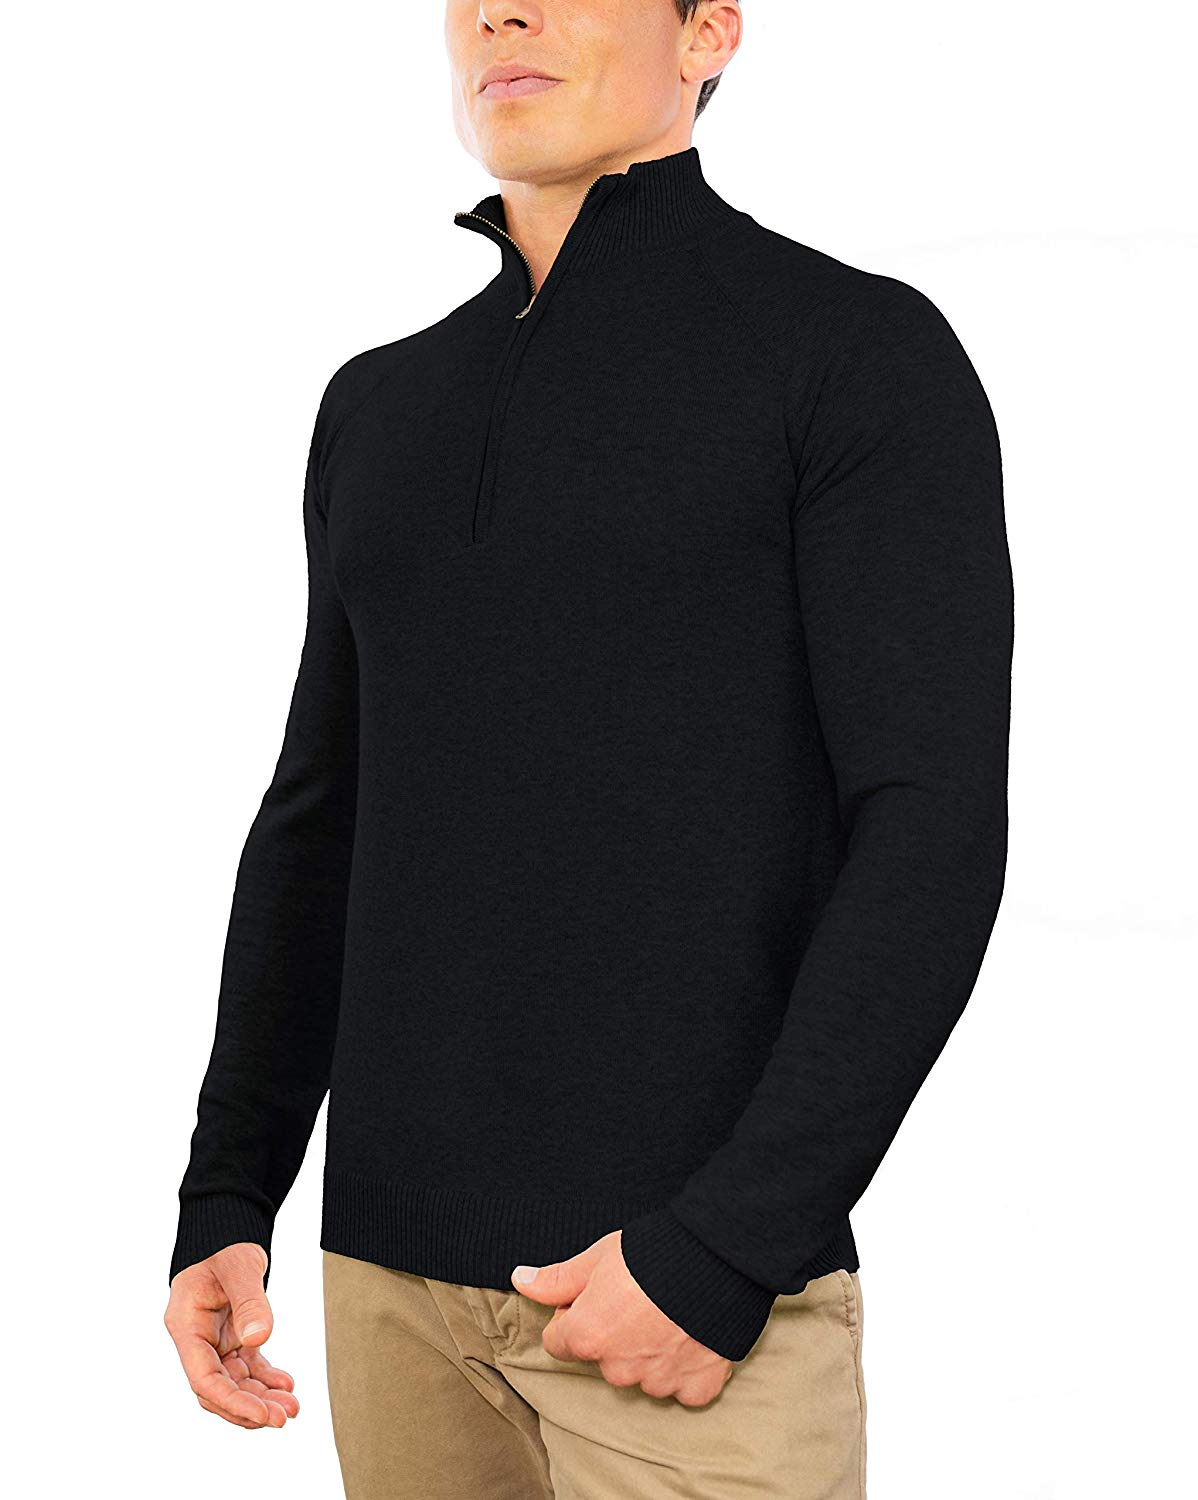 Perfect Slim Fit Lightweight Soft Fitted Quarter Zip Pullover Sweater